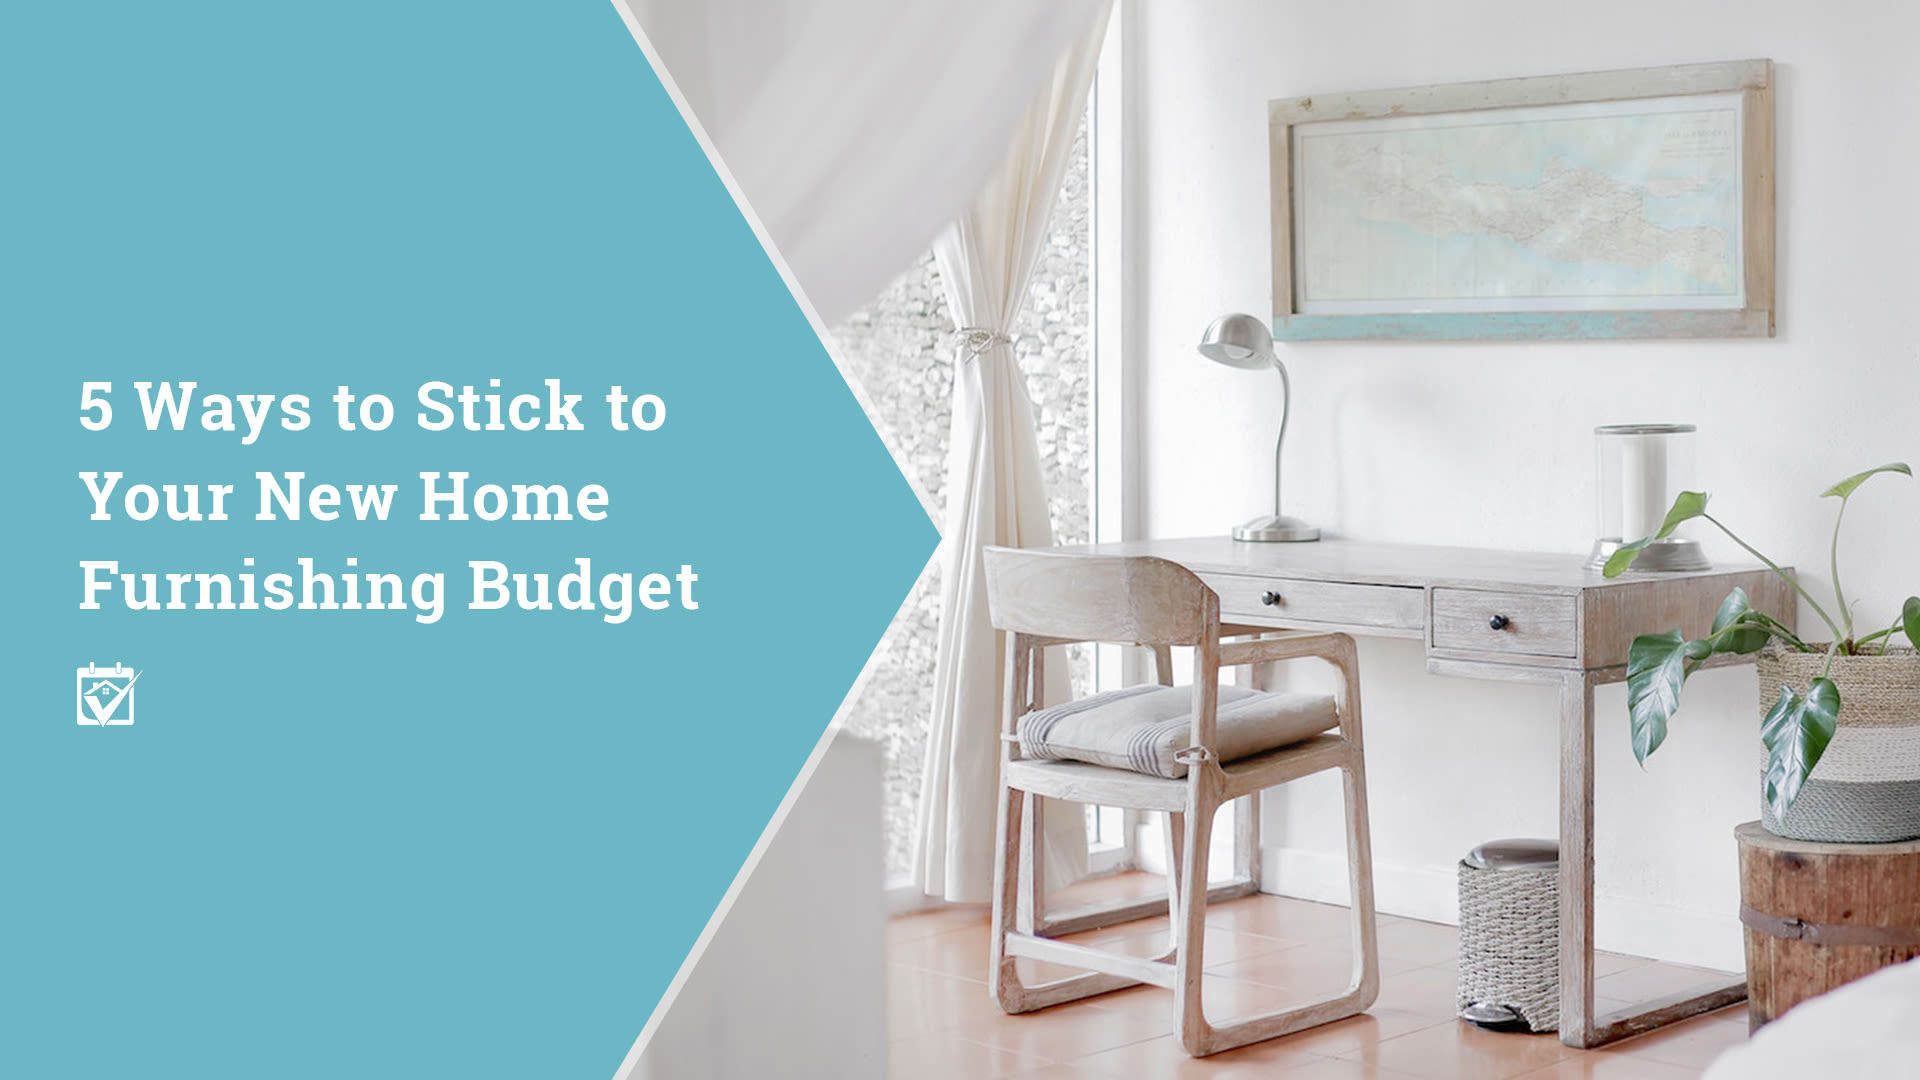 5 Ways to Stick your New Home Furnishings